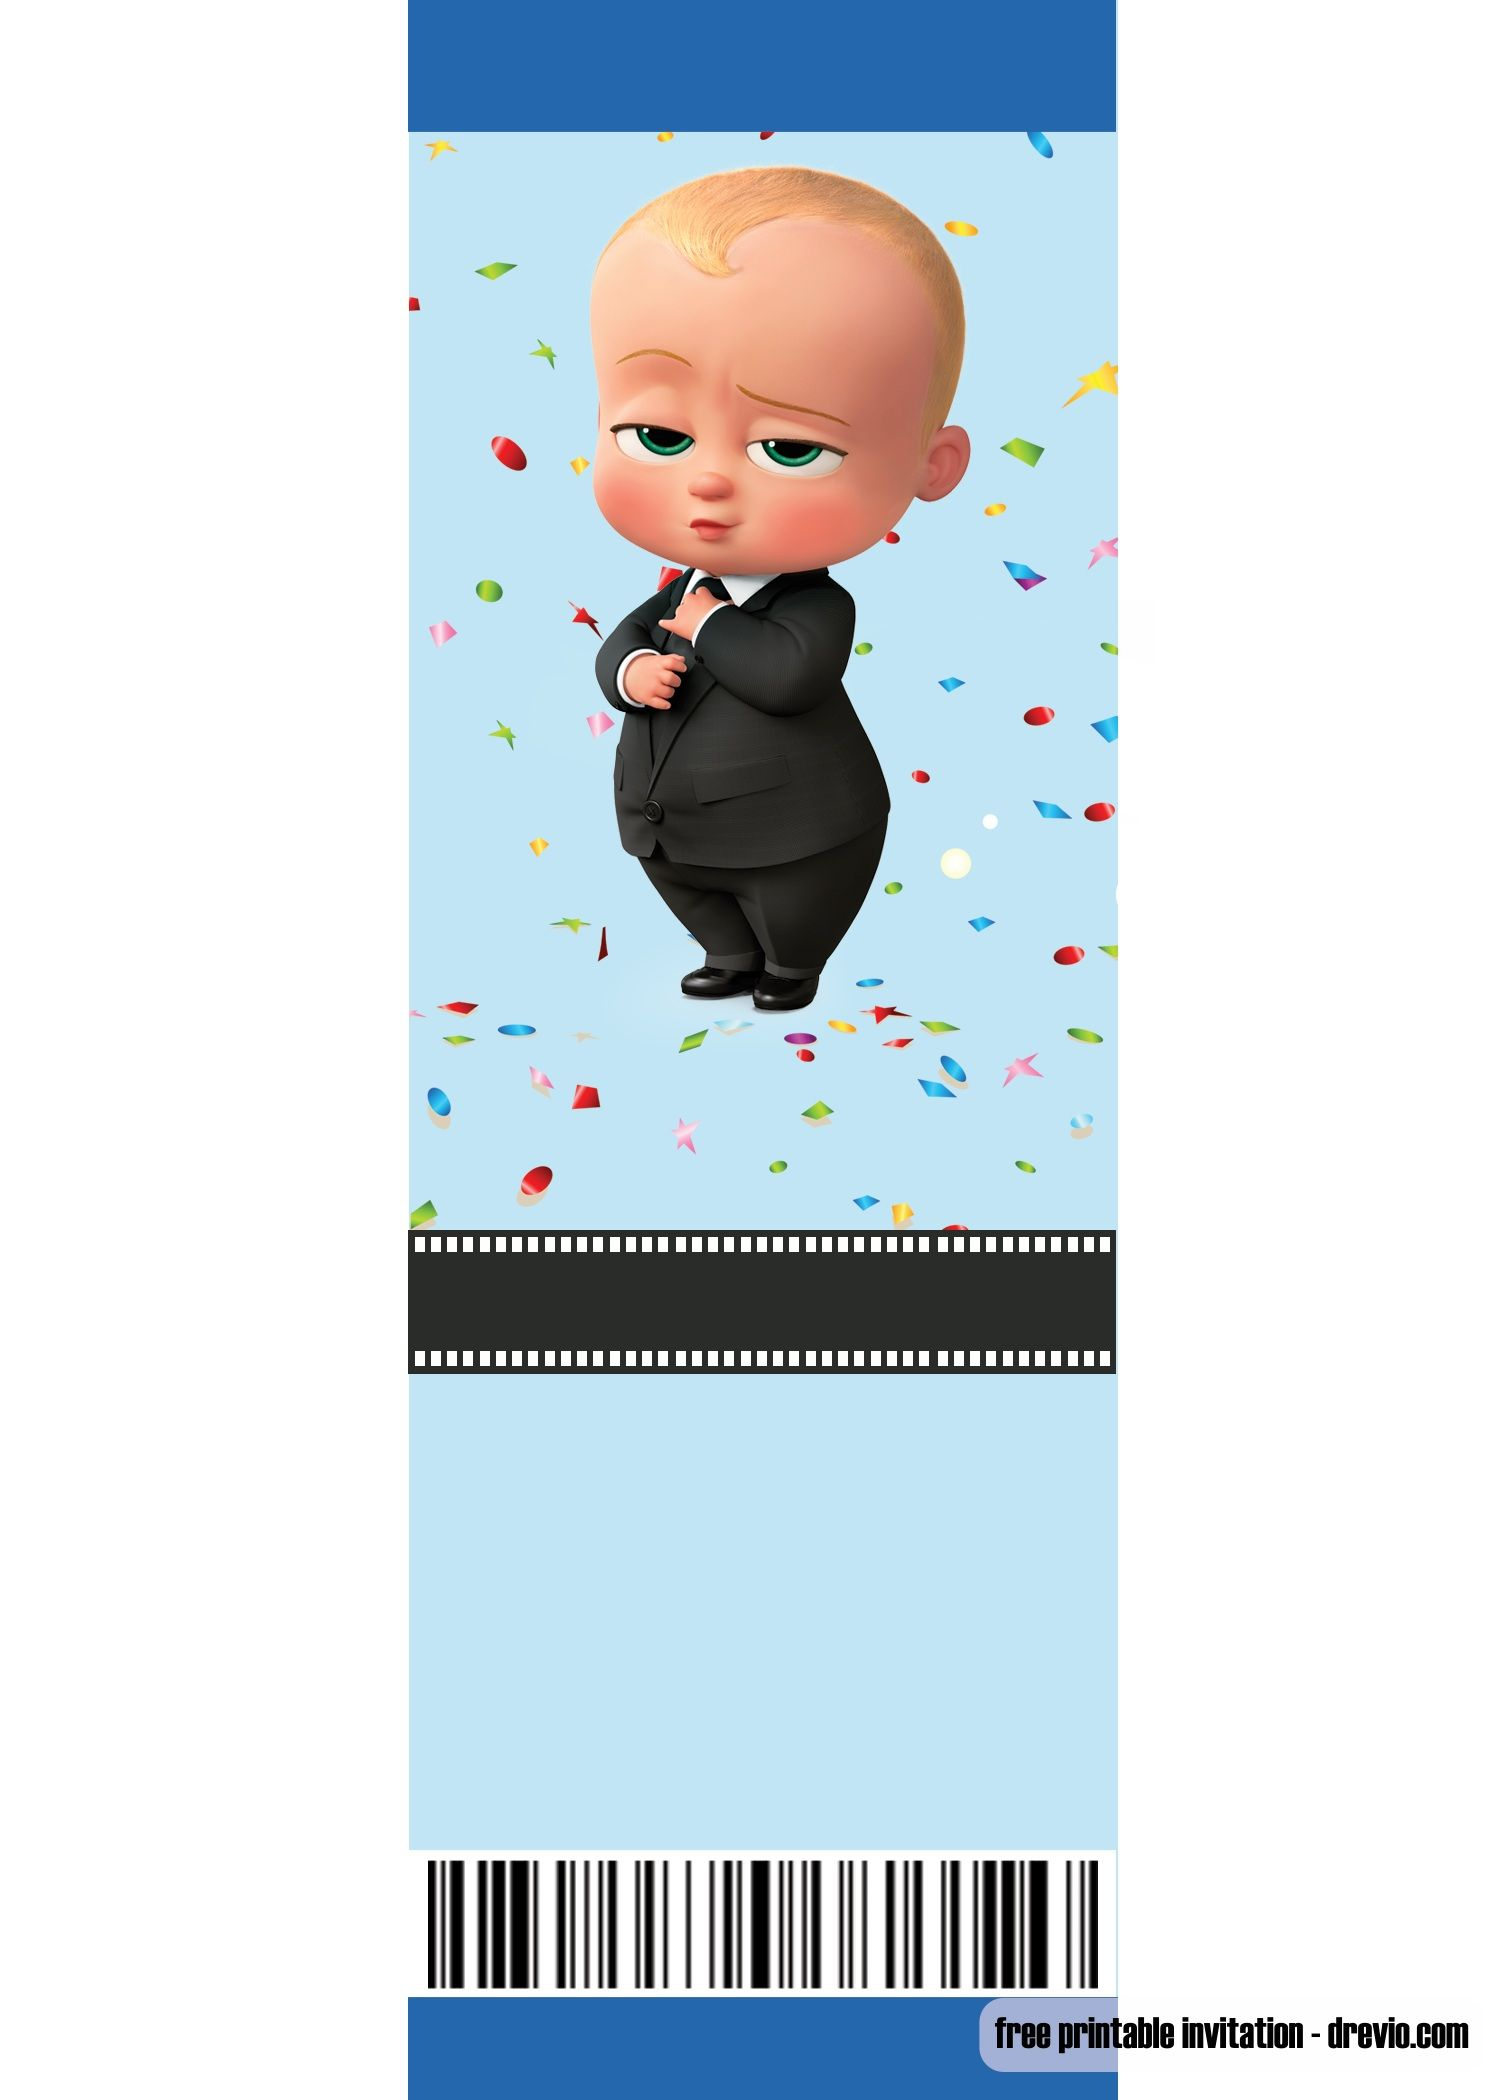 Baby Boss Invitation Template For Your Adorable Little Boss Baby Birthday Invitations Baby Boy Invitations Baby Birthday Party Invitations